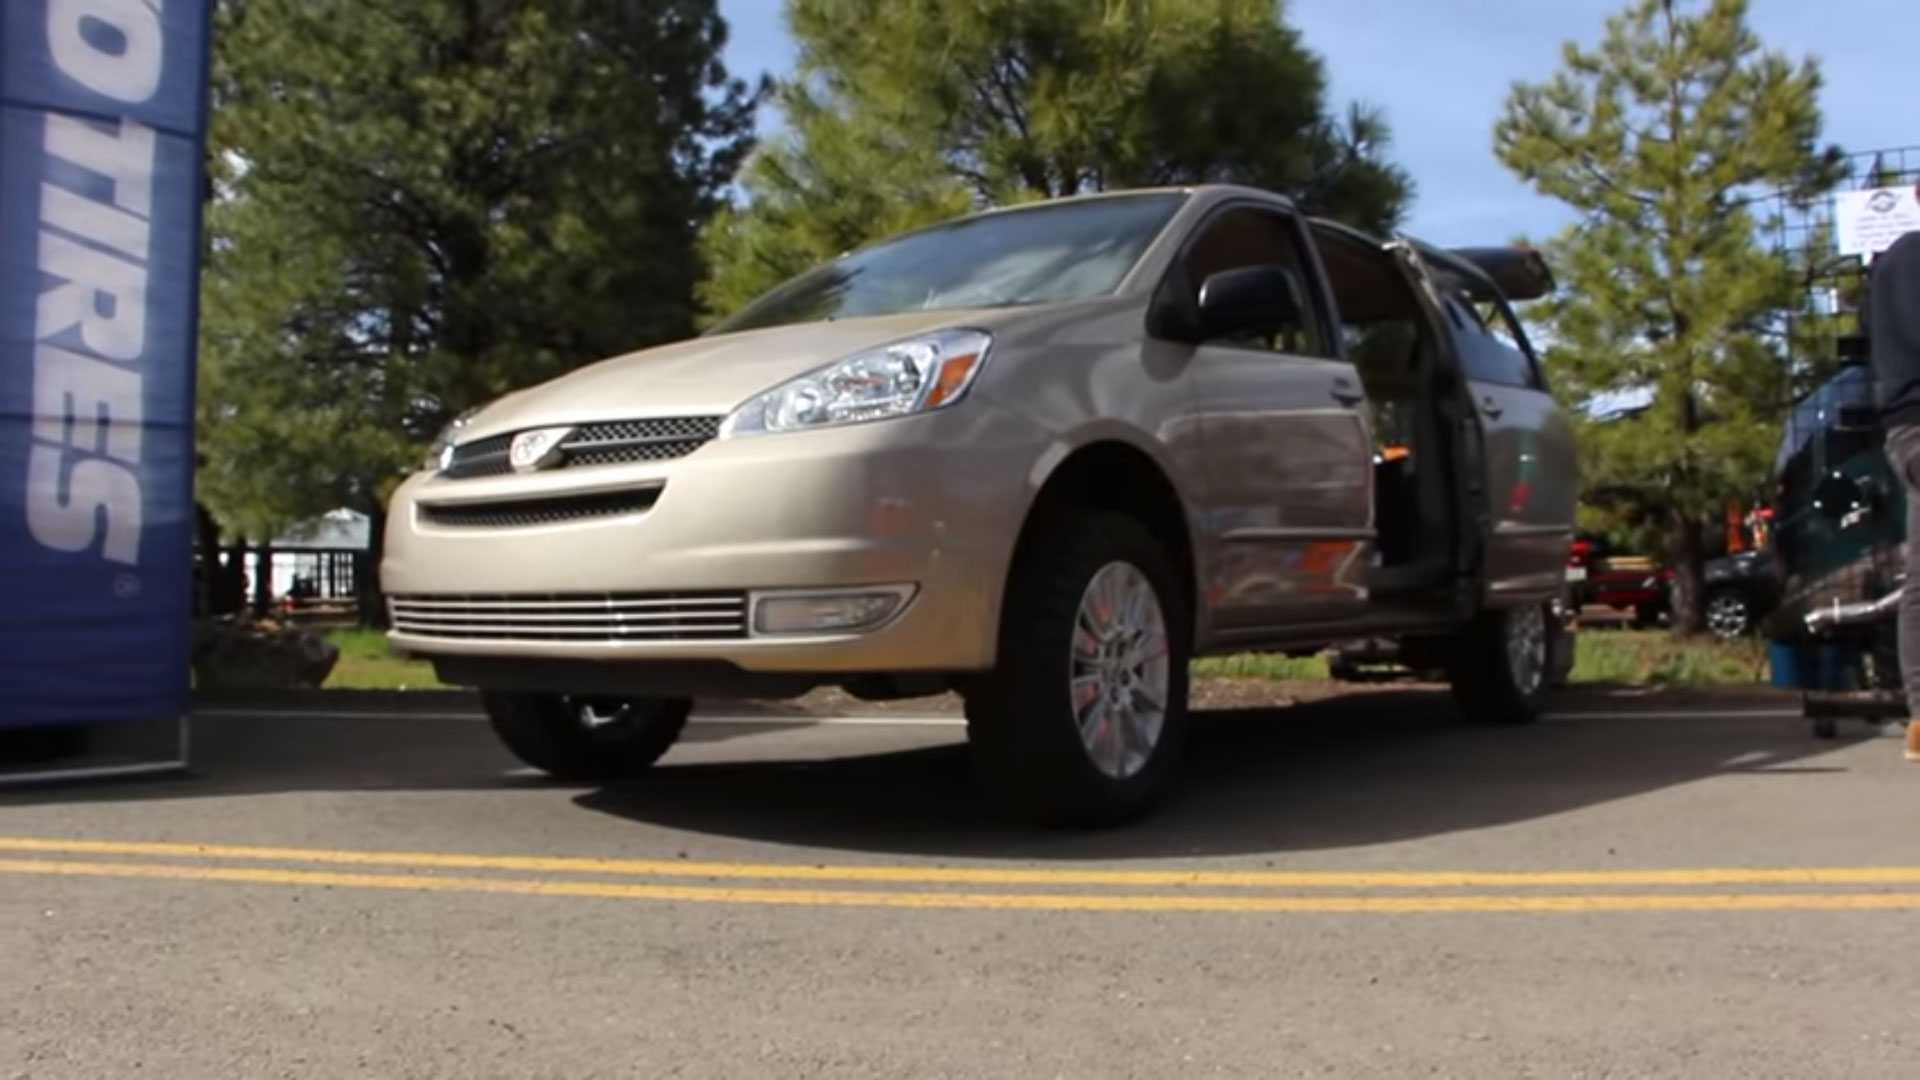 Yes, You Can Buy A 3 5-Inch Lift Kit For A Mid-'00s Toyota Sienna